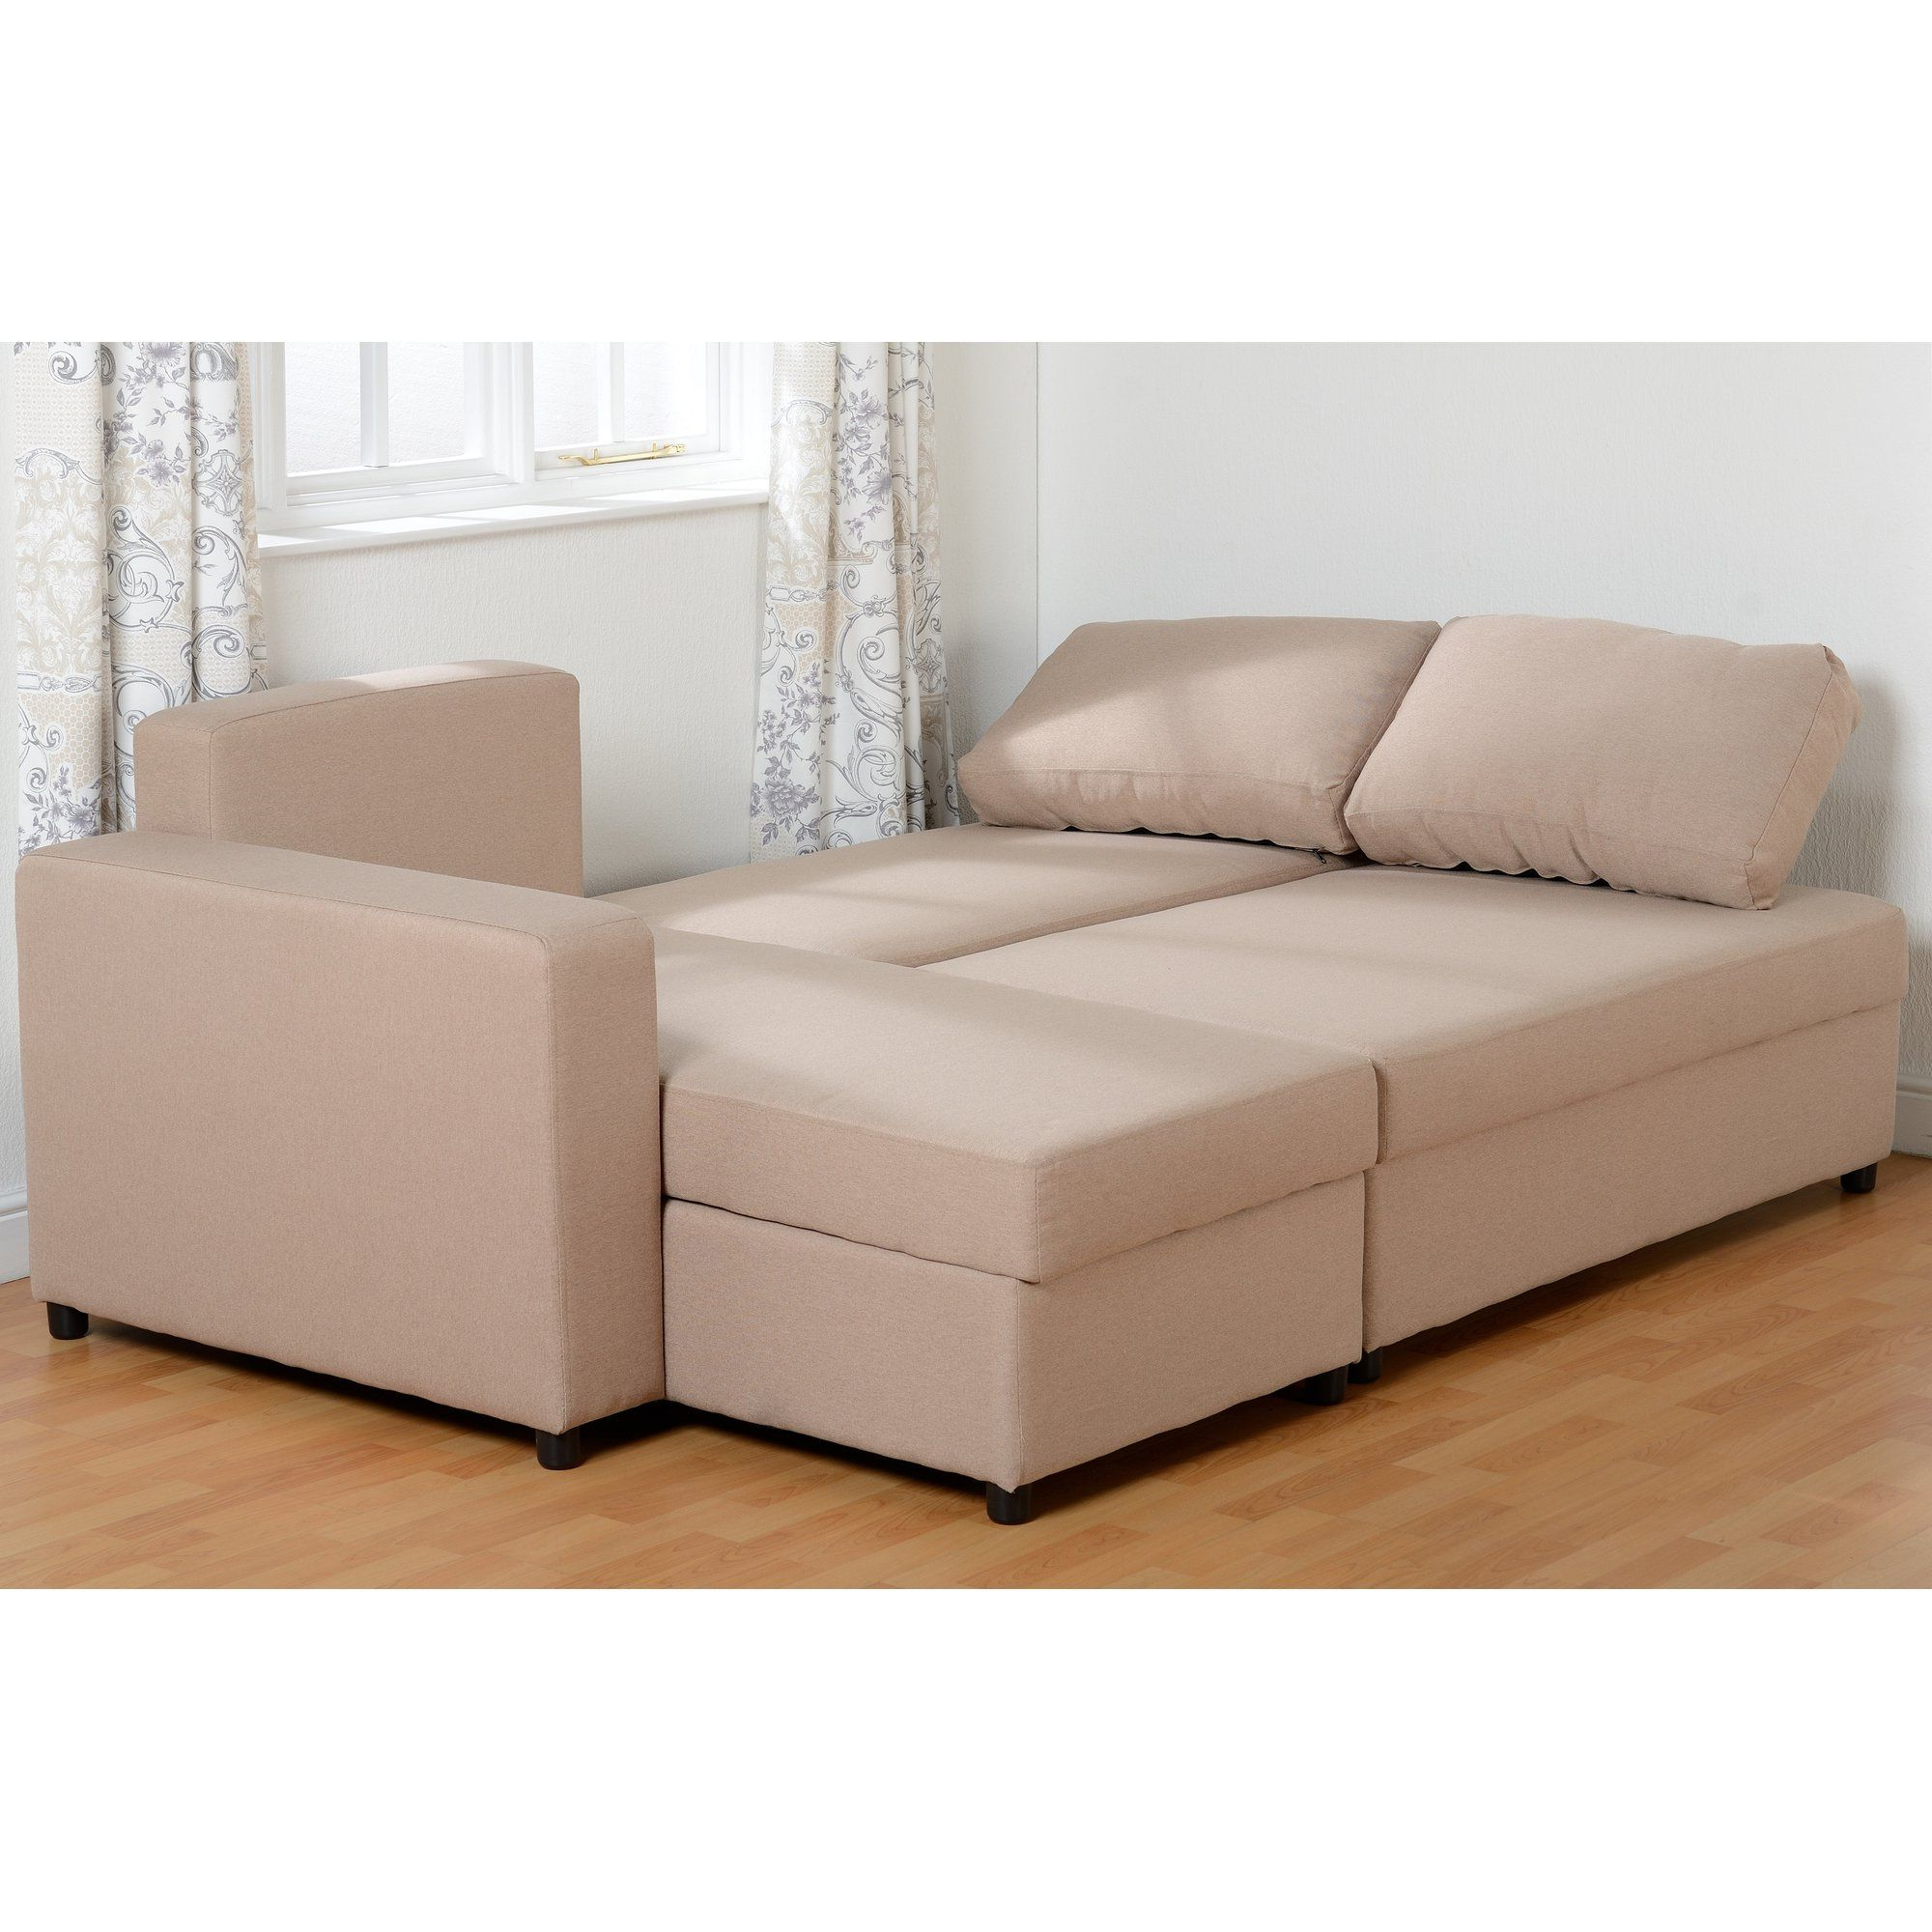 Well Known Corner Sofa Sleeper – Wood Chair Throughout 2Pc Maddox Right Arm Facing Sectional Sofas With Cuddler Brown (View 7 of 18)